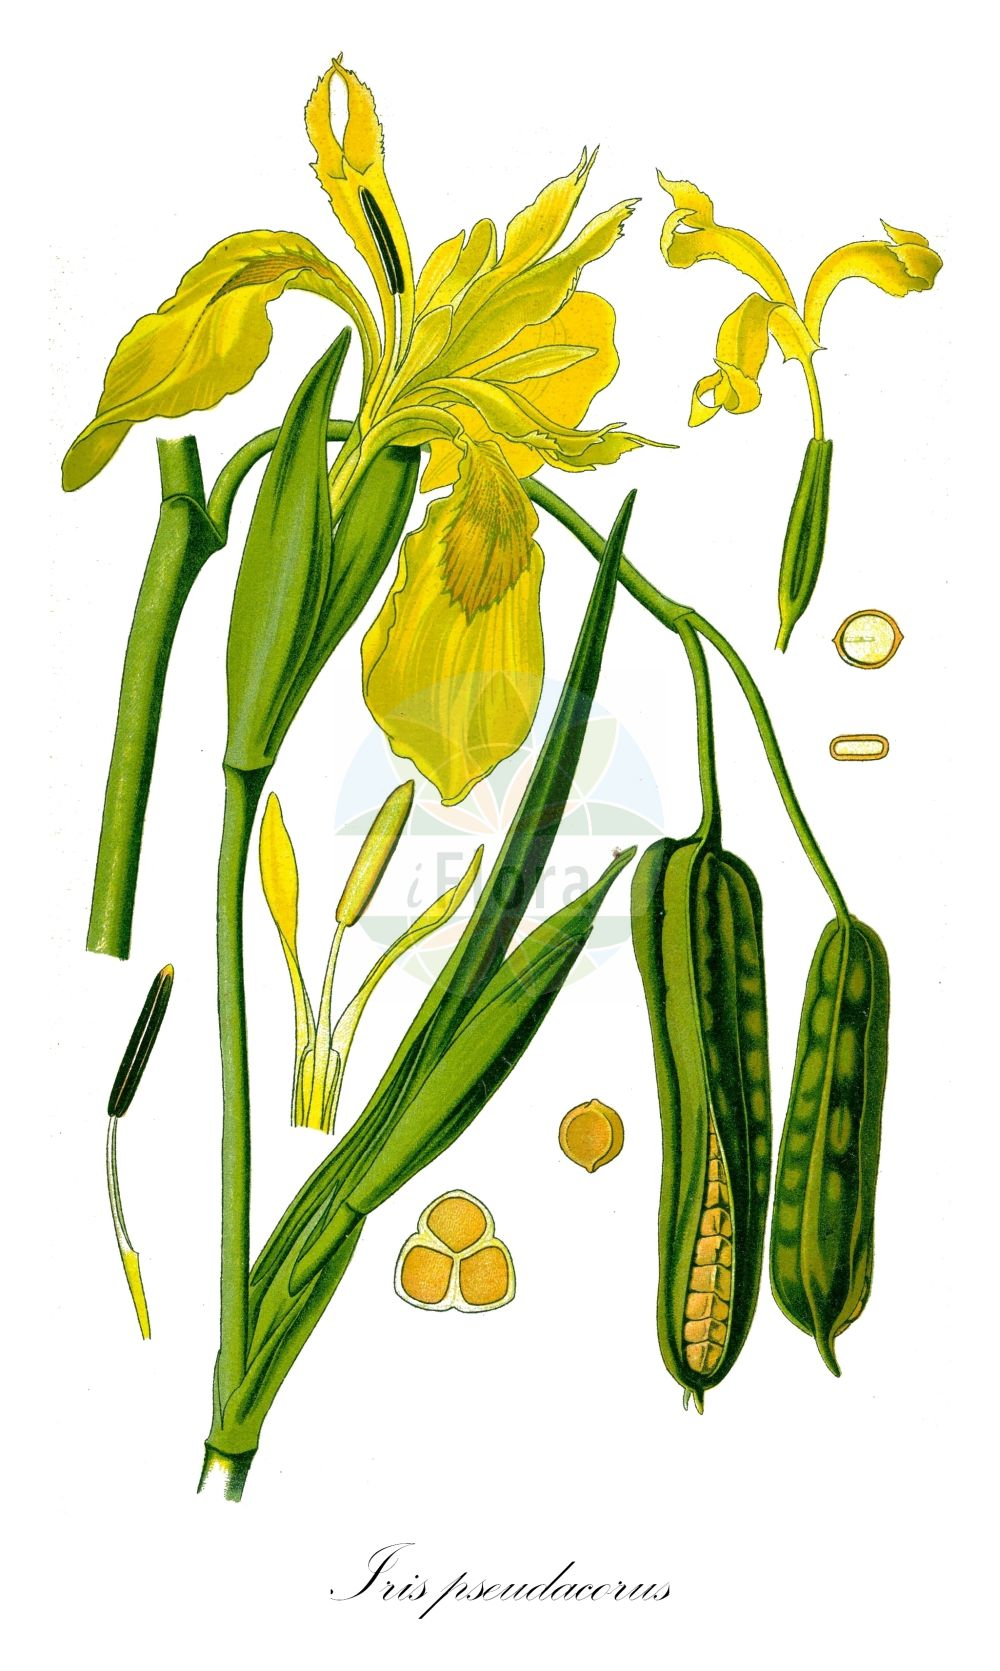 Historische Abbildung von Iris pseudacorus (Sumpf-Schwertlilie - Yellow Iris). ---- Historical Drawing of Iris pseudacorus (Sumpf-Schwertlilie - Yellow Iris). (Iris pseudacorus,Sumpf-Schwertlilie,Yellow Iris,Acorus adulterinus,Colchicum falcifolium,Iris acoriformis,Iris acoroides,Iris bastardii,Iris curtopetala,Iris flava,Iris lutea,Iris pallidior,Iris paludosa,Iris palustris,Iris sativa,Limnirion pseudacorus,Limniris pseudacorus,Moraea candolleana,Pseudo-iris palustris,Vieusseuxia iridioides,Xiphion acoroides,Xiphion pseudacorus,Xyridion acoroideum,Xyridion pseudacorus,Gelbe Schwertlilie,Wasser-Schwertlilie,Jacob's Wort,Paleyellow Iris,Rocky Mountain Iris,Water Flag,Yellow Flag,Yellow-flag Iris,Iris,Schwertlilie,Iris,Iridaceae,Schwertliliengewaechse,Iris family,Thomé (1885))